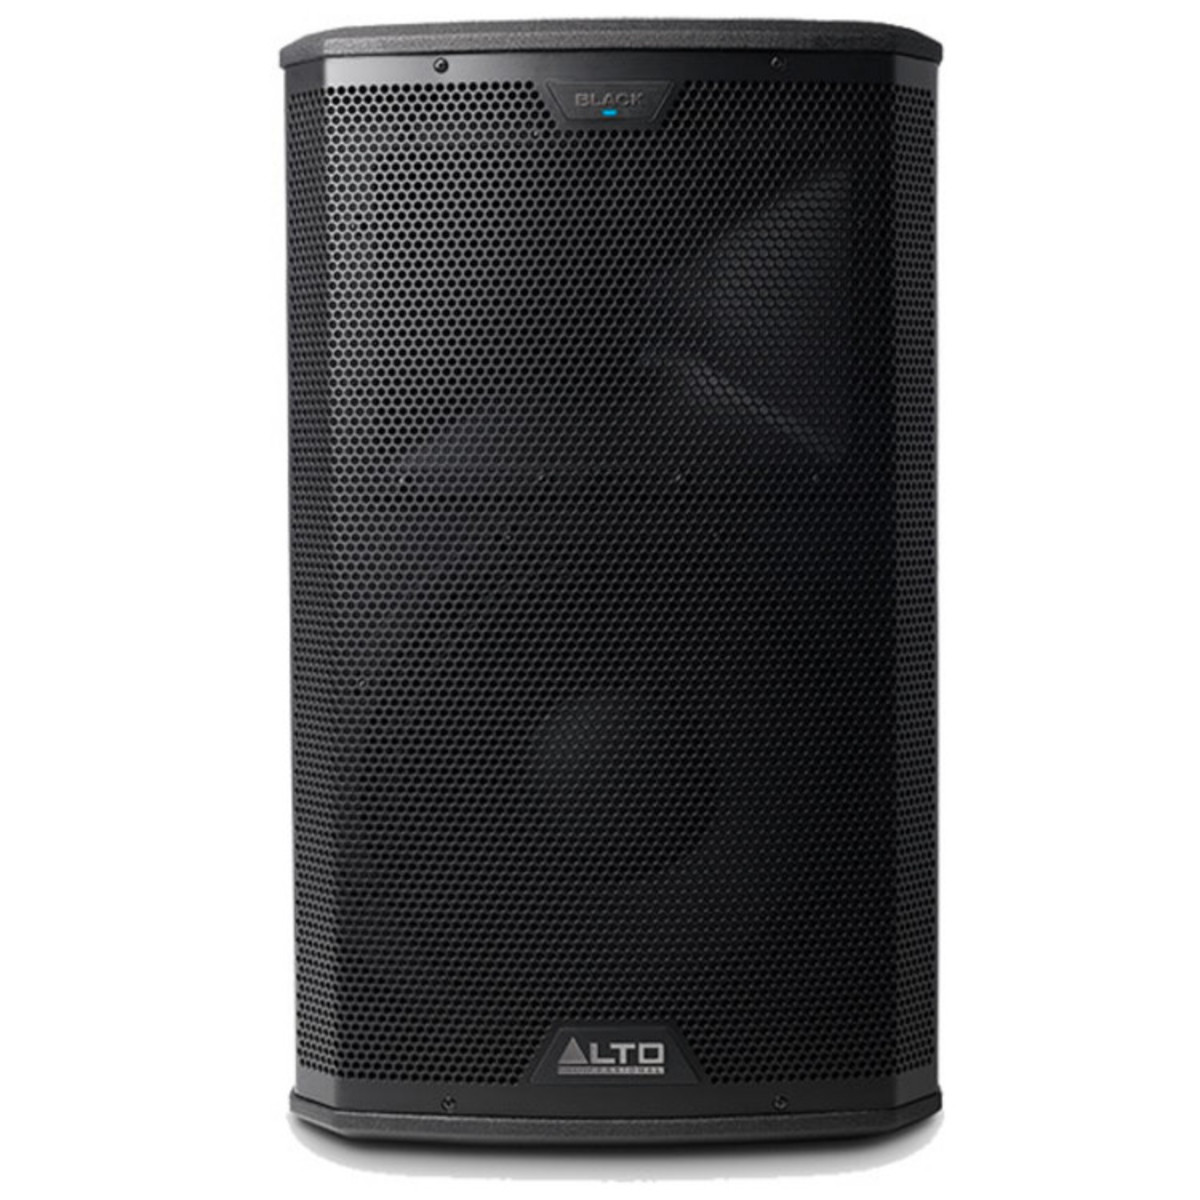 alto black 12 12 inch 2 way active pa speaker nearly new at. Black Bedroom Furniture Sets. Home Design Ideas